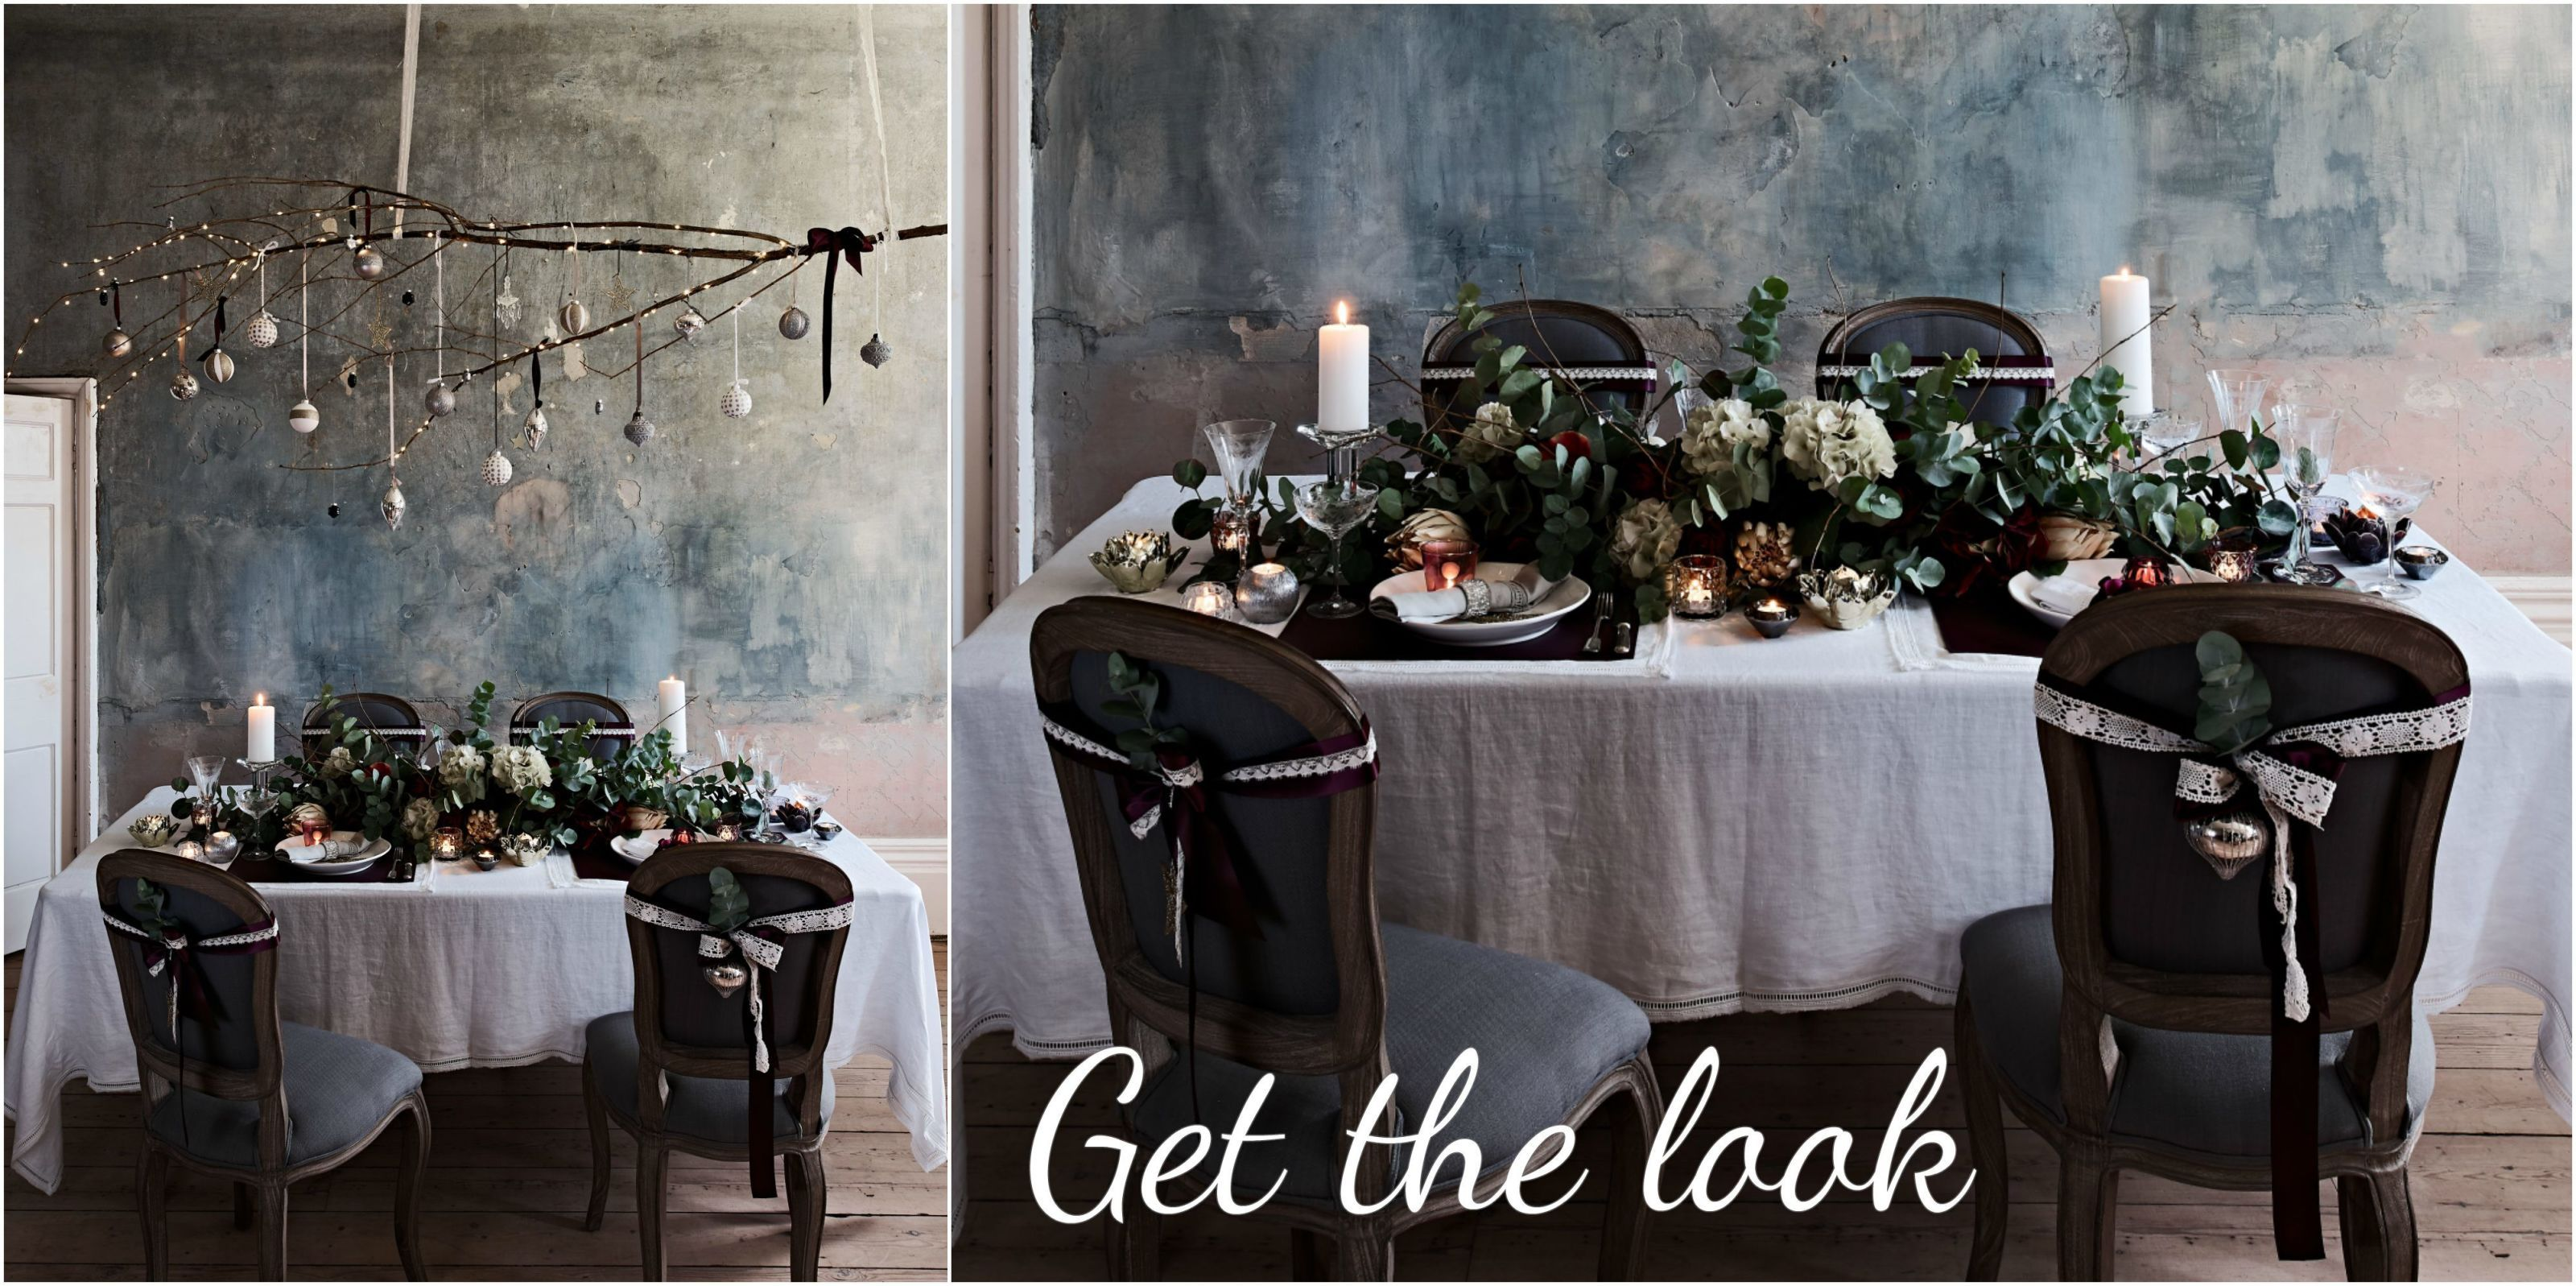 Brissi dining table setting & How to create a stylish gothic table setting for Christmas